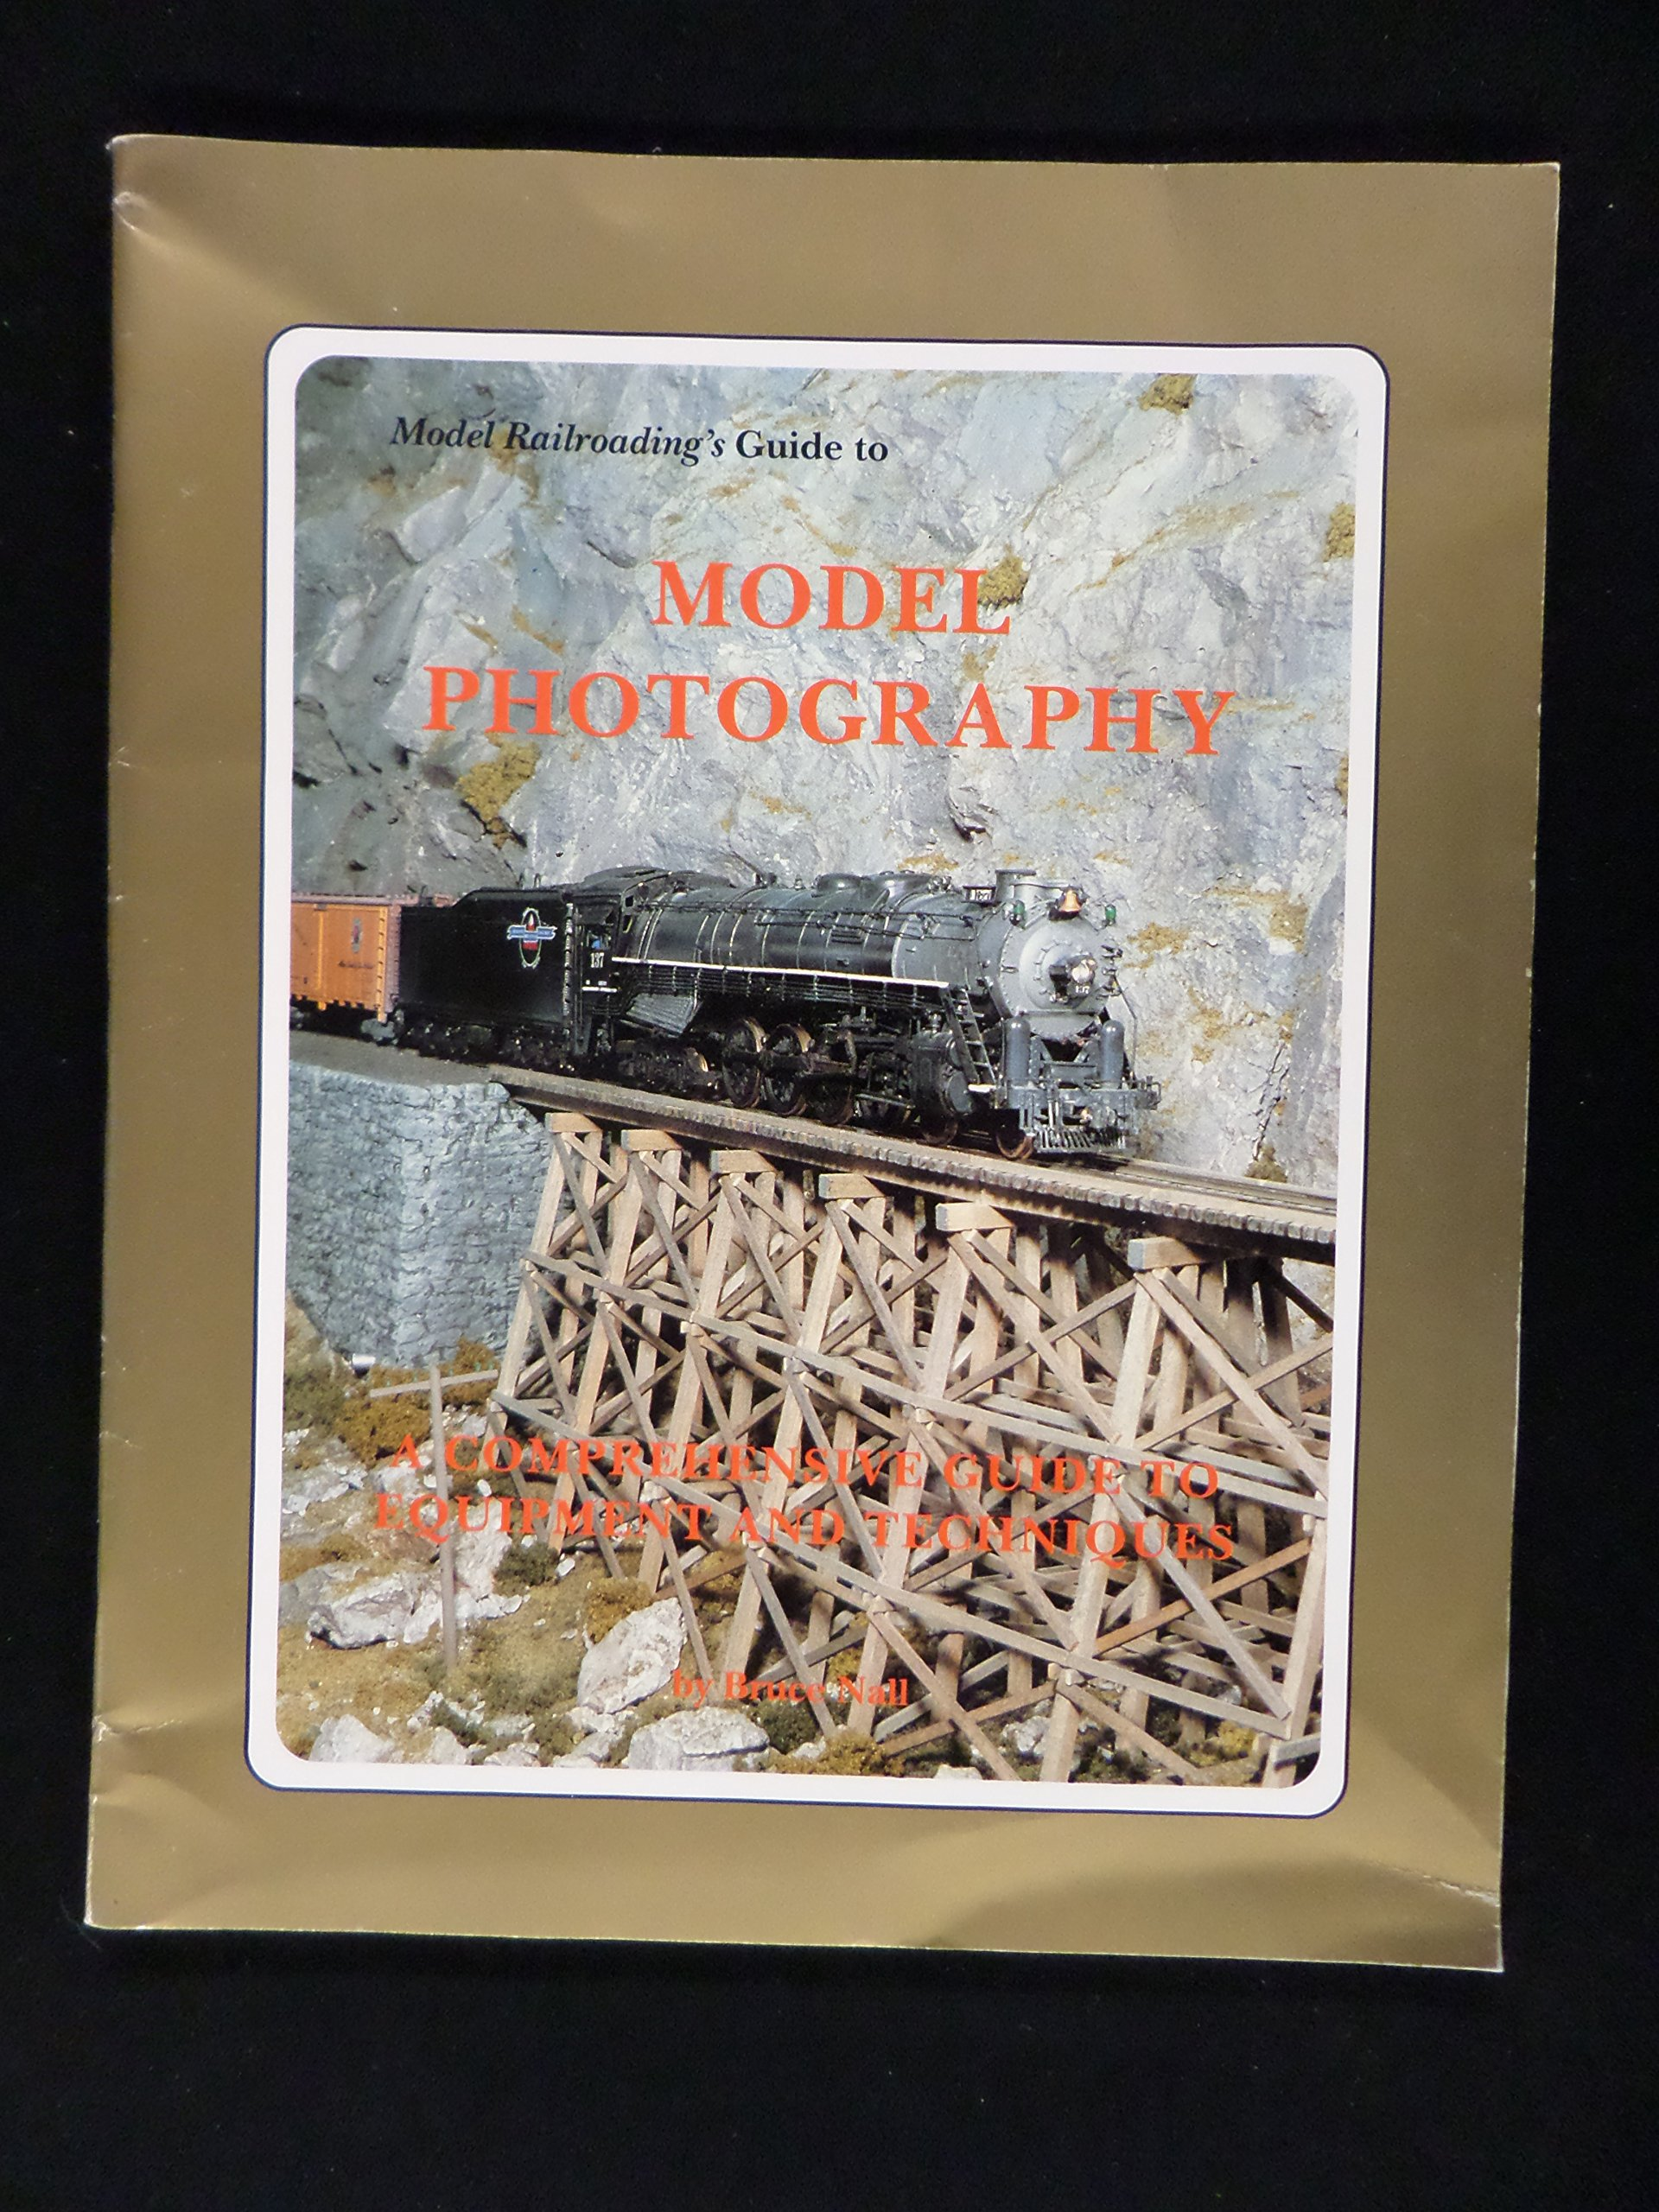 Model Railroading's Guide to Model Photography